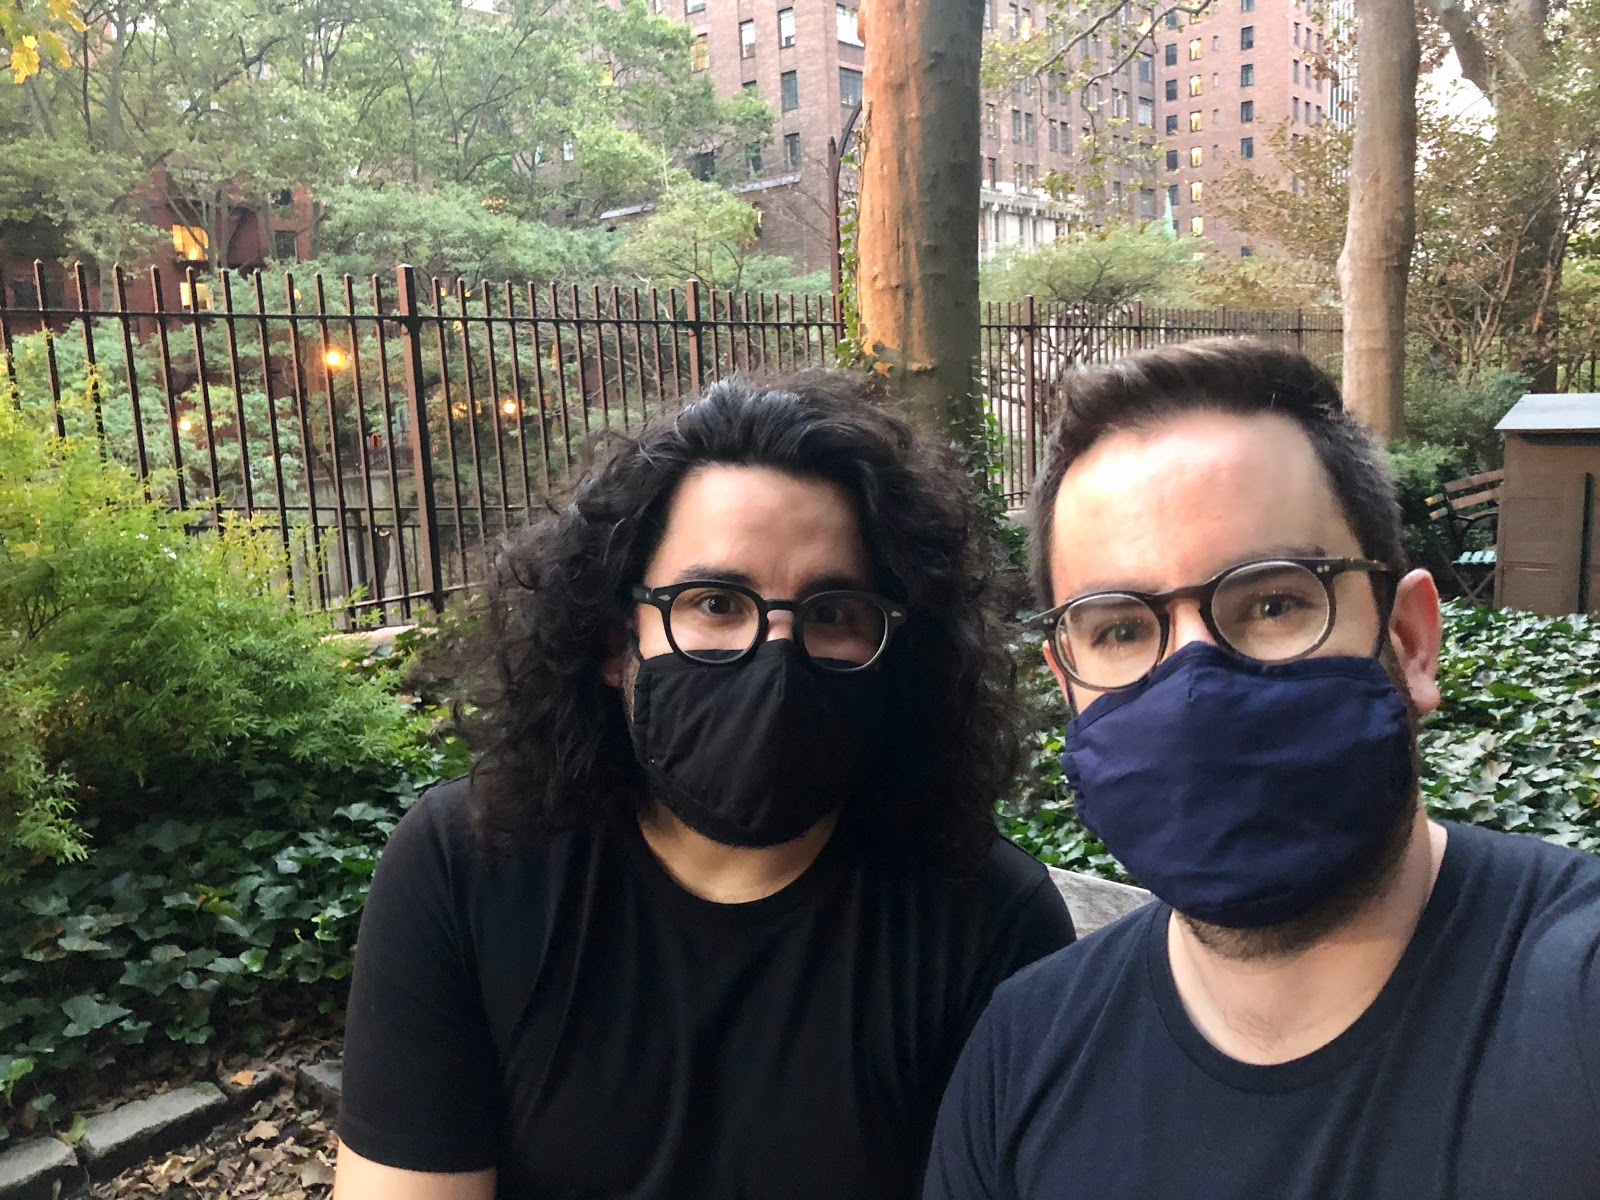 Is it a coincidence that our masks match our shirts? Maybe.